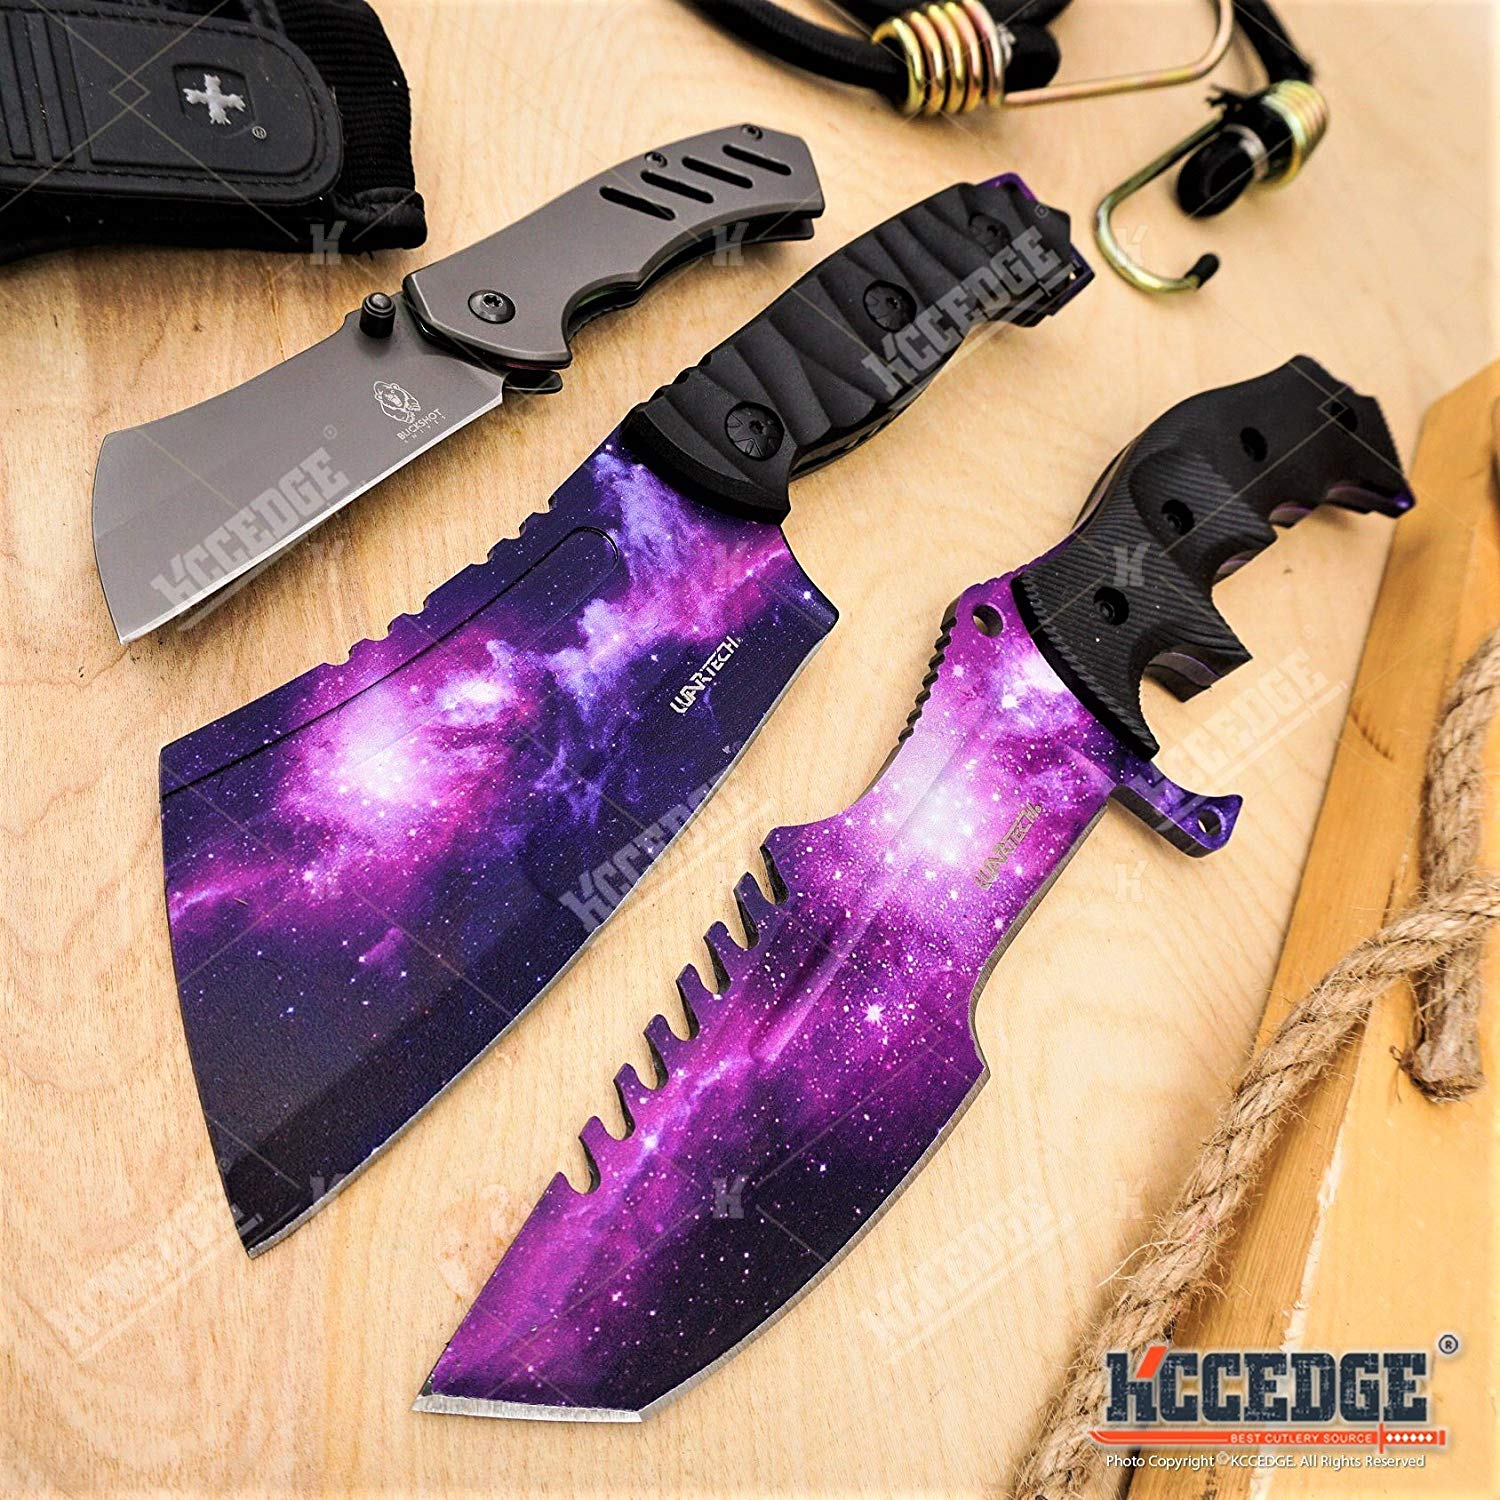 "WarTech 3PC GALAXY COMBO SET 11"" CSGO TACTICAL KNIFE + 9.5"" CLEAVER FIXED BLADES + 6.5"" BUCKSHOT CLEAVE POCKET KNIFE OUTDOOR SURVIVAL HUNTING RAZOR BLADE"